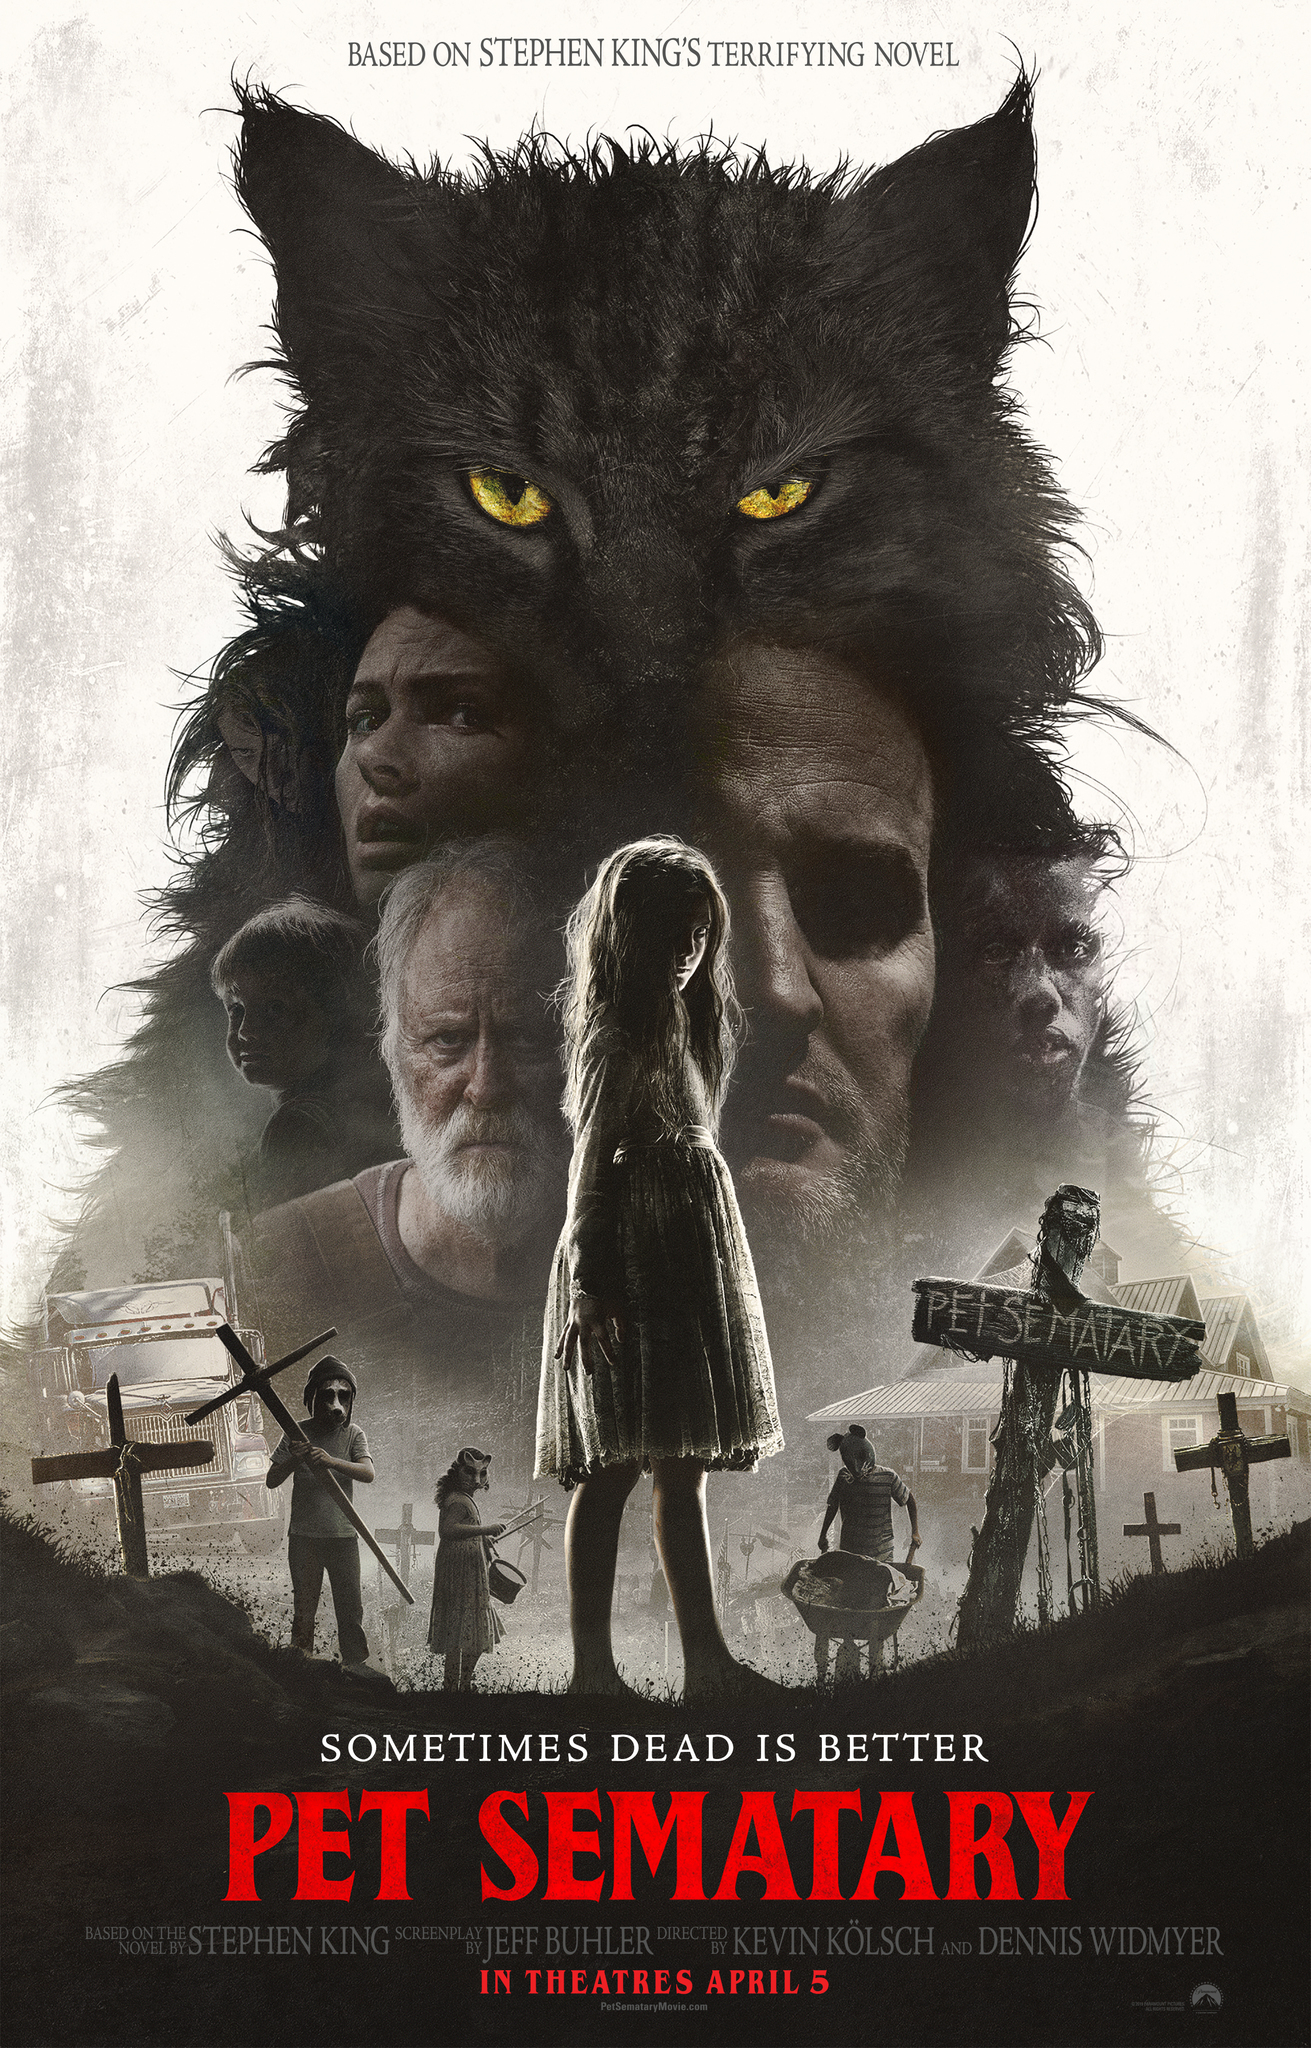 Othersode #26: Sometimes Dad Is Better / Pet Sematary - Get unburied with the #BookSquad (and special guest Charlie, Emily's dad!) as we come back from the dead to talk about the new 2019 film adaptation of Stephen King's Pet Sematary. We discuss grief, death and the big changes between the book (and the 1989 film) and the new movie. Plus, you get to learn a little about our childhood pets! Then we dig into some Captain Marvel listener feedback and tell you what's on the #BookSquadBlog right now. Up next for our #bookpisode: Gingerbread by Helen Oyeyemi. Read along with us for that and for our next #othersode, where we'll (probably) hate on Stranger in the House by Shari Lapena.